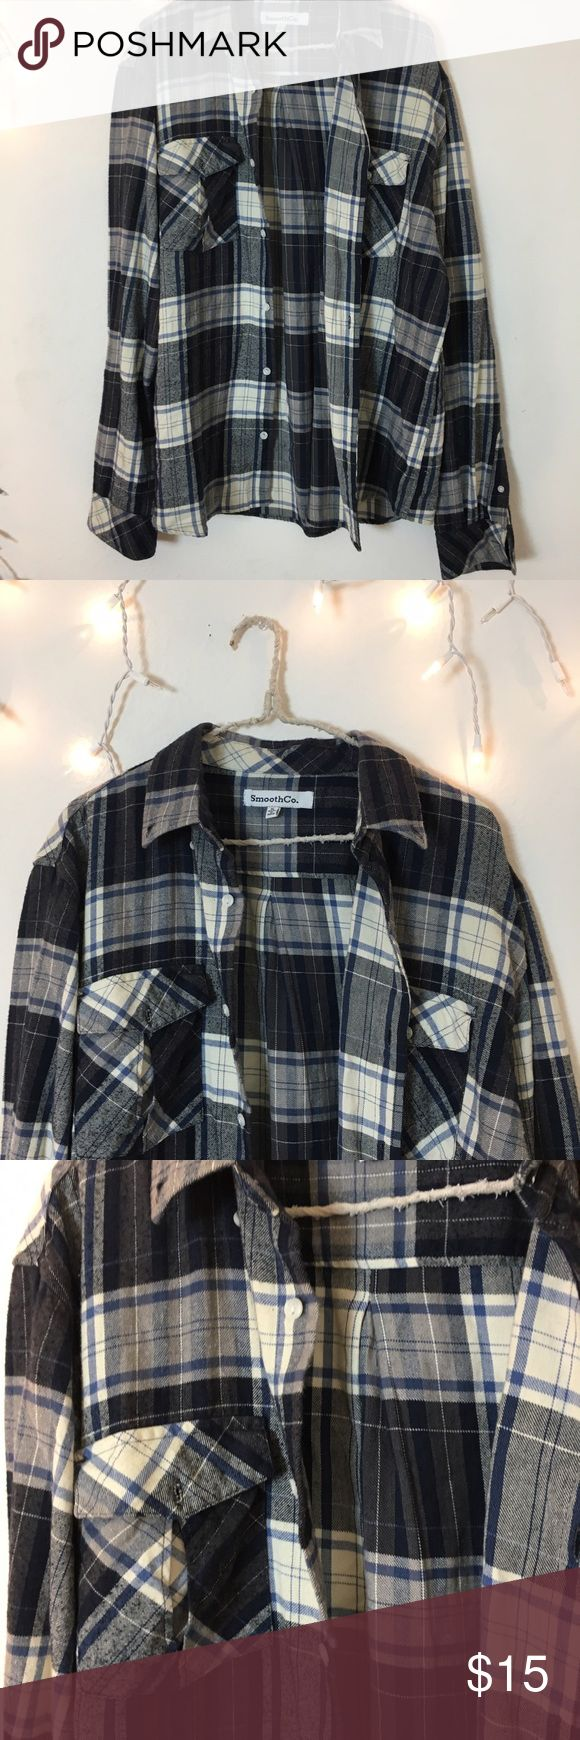 Vintage Black White and Blue Flannel Perfect condition multi color Flannel. Long oversized fit and ultra comfy. Bought from Brandy Melville vintage section, tag brand is smooth co. Best for women's small or medium oversized fit. Brandy Melville Tops Tees - Long Sleeve